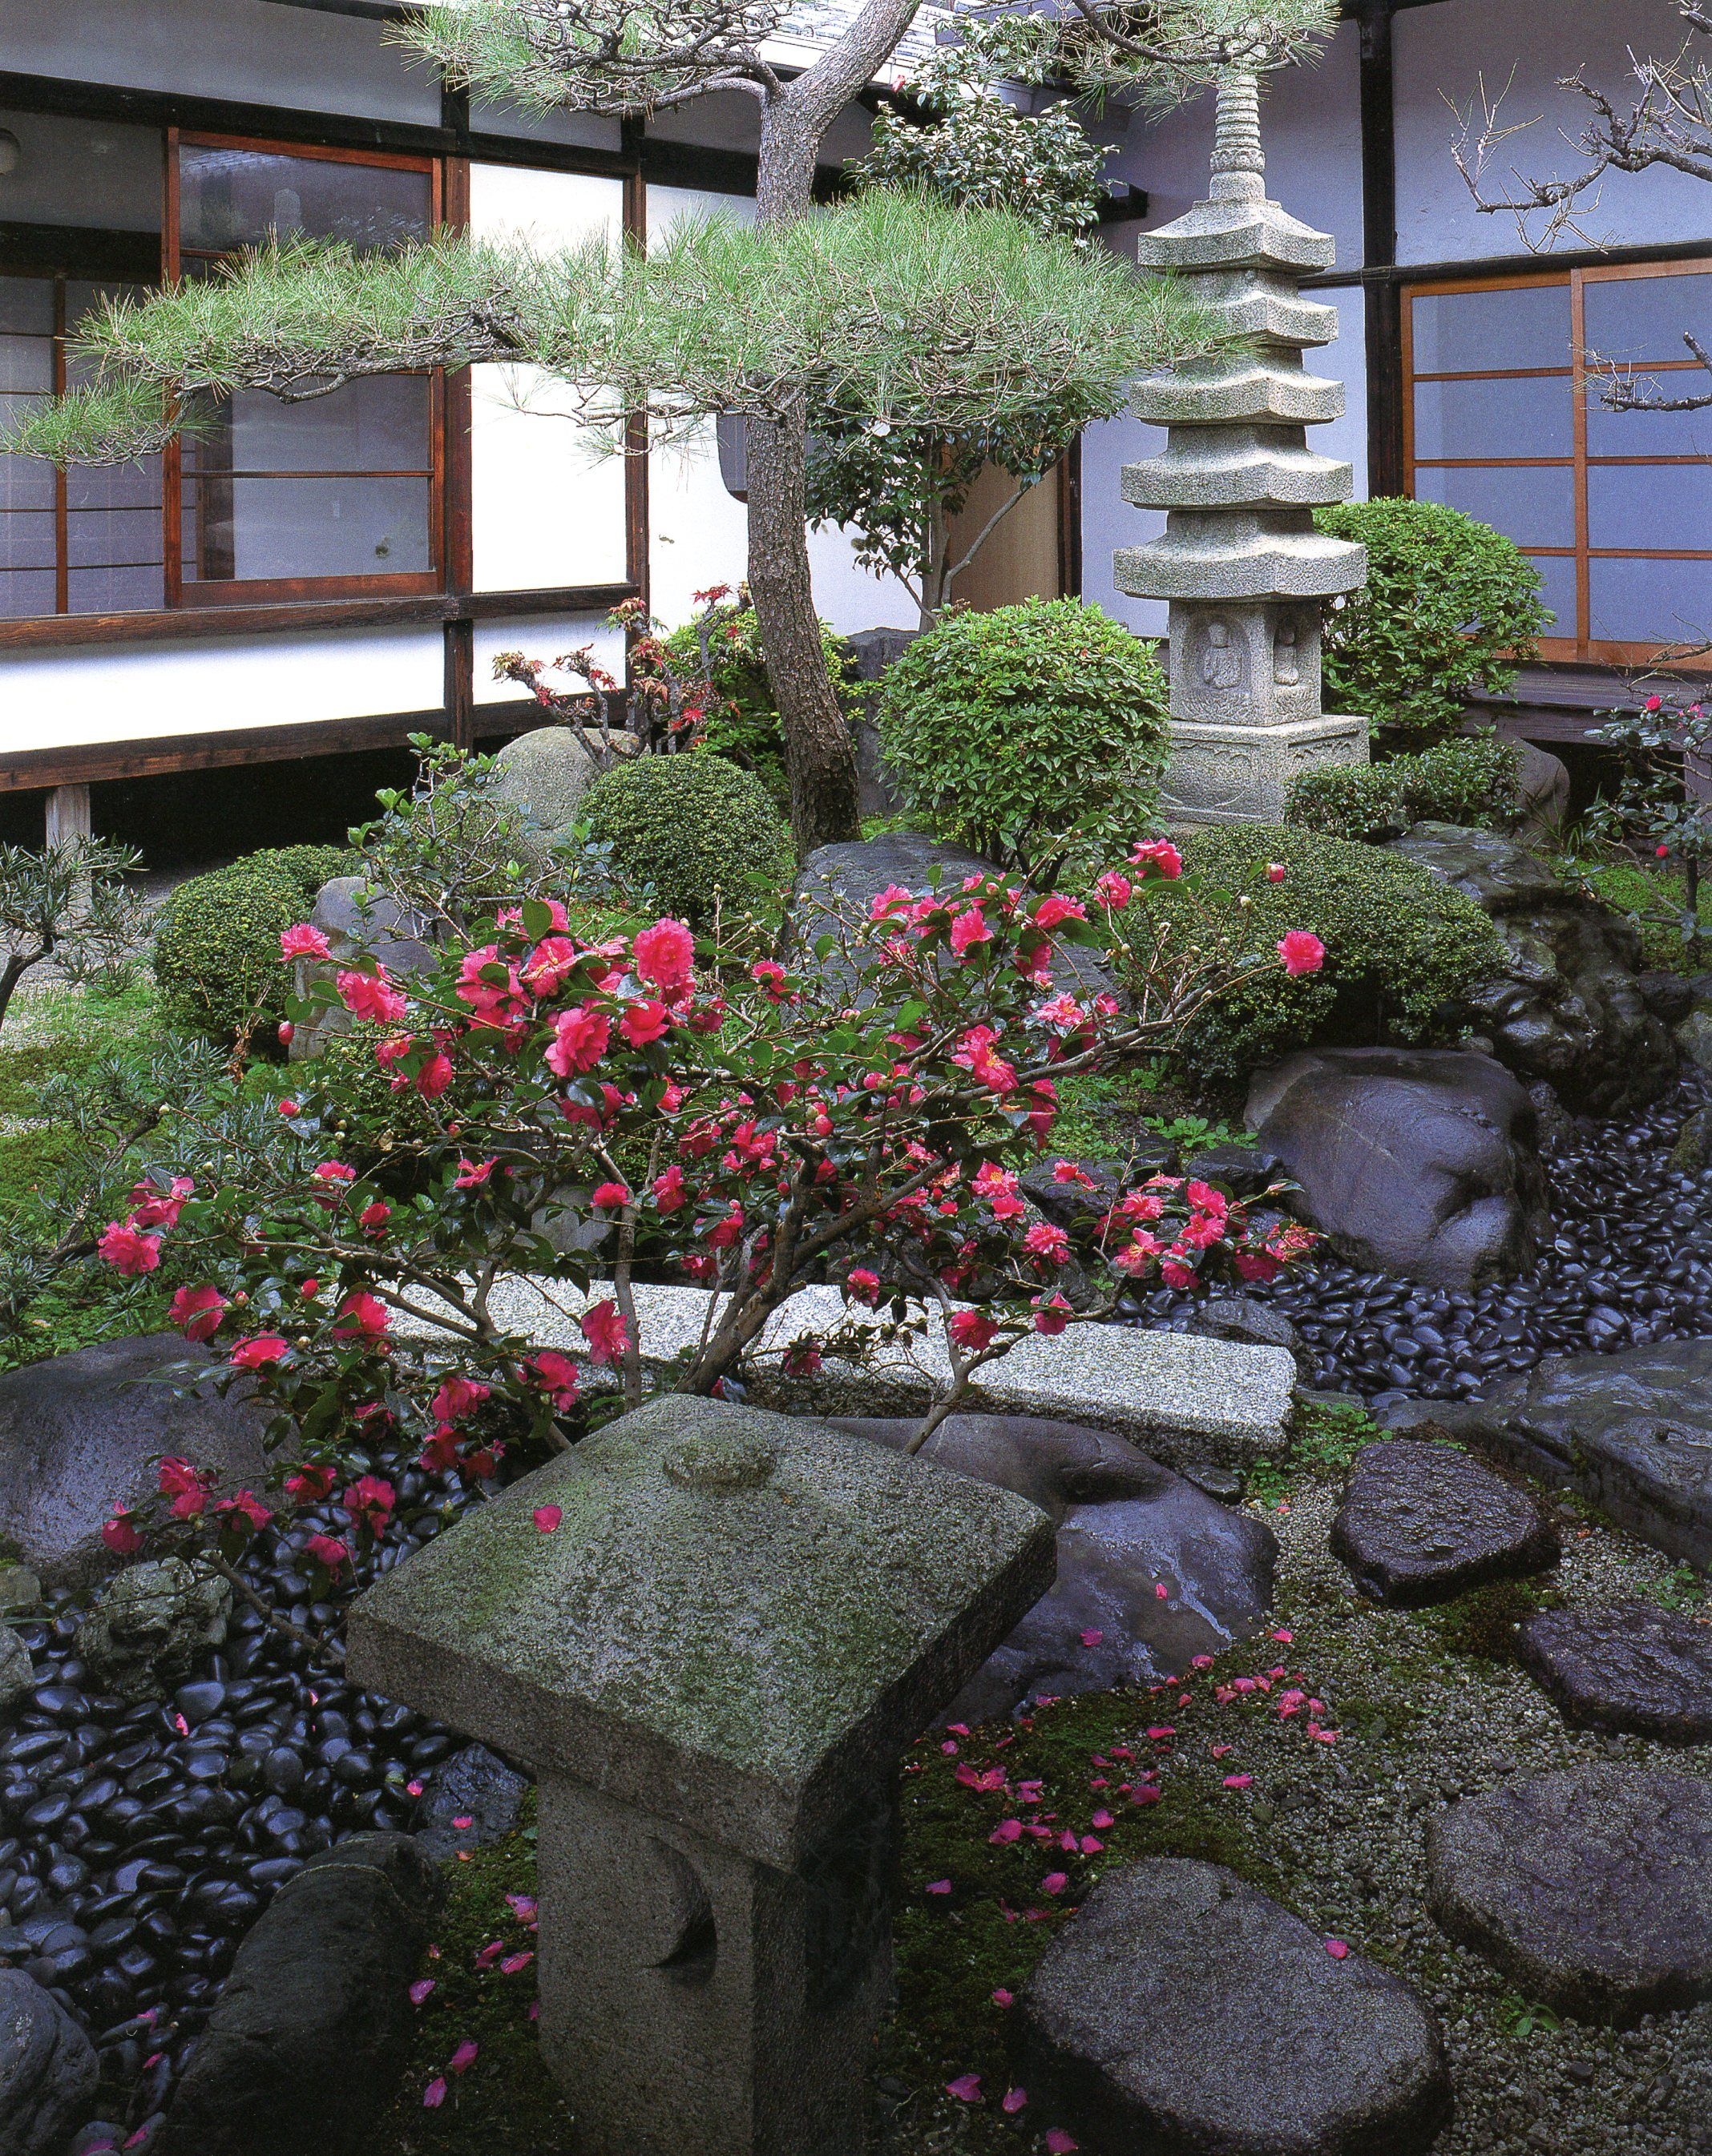 f33d68522ad9680c2fbd8856c61a2842 - Landscapes For Small Spaces Japanese Courtyard Gardens